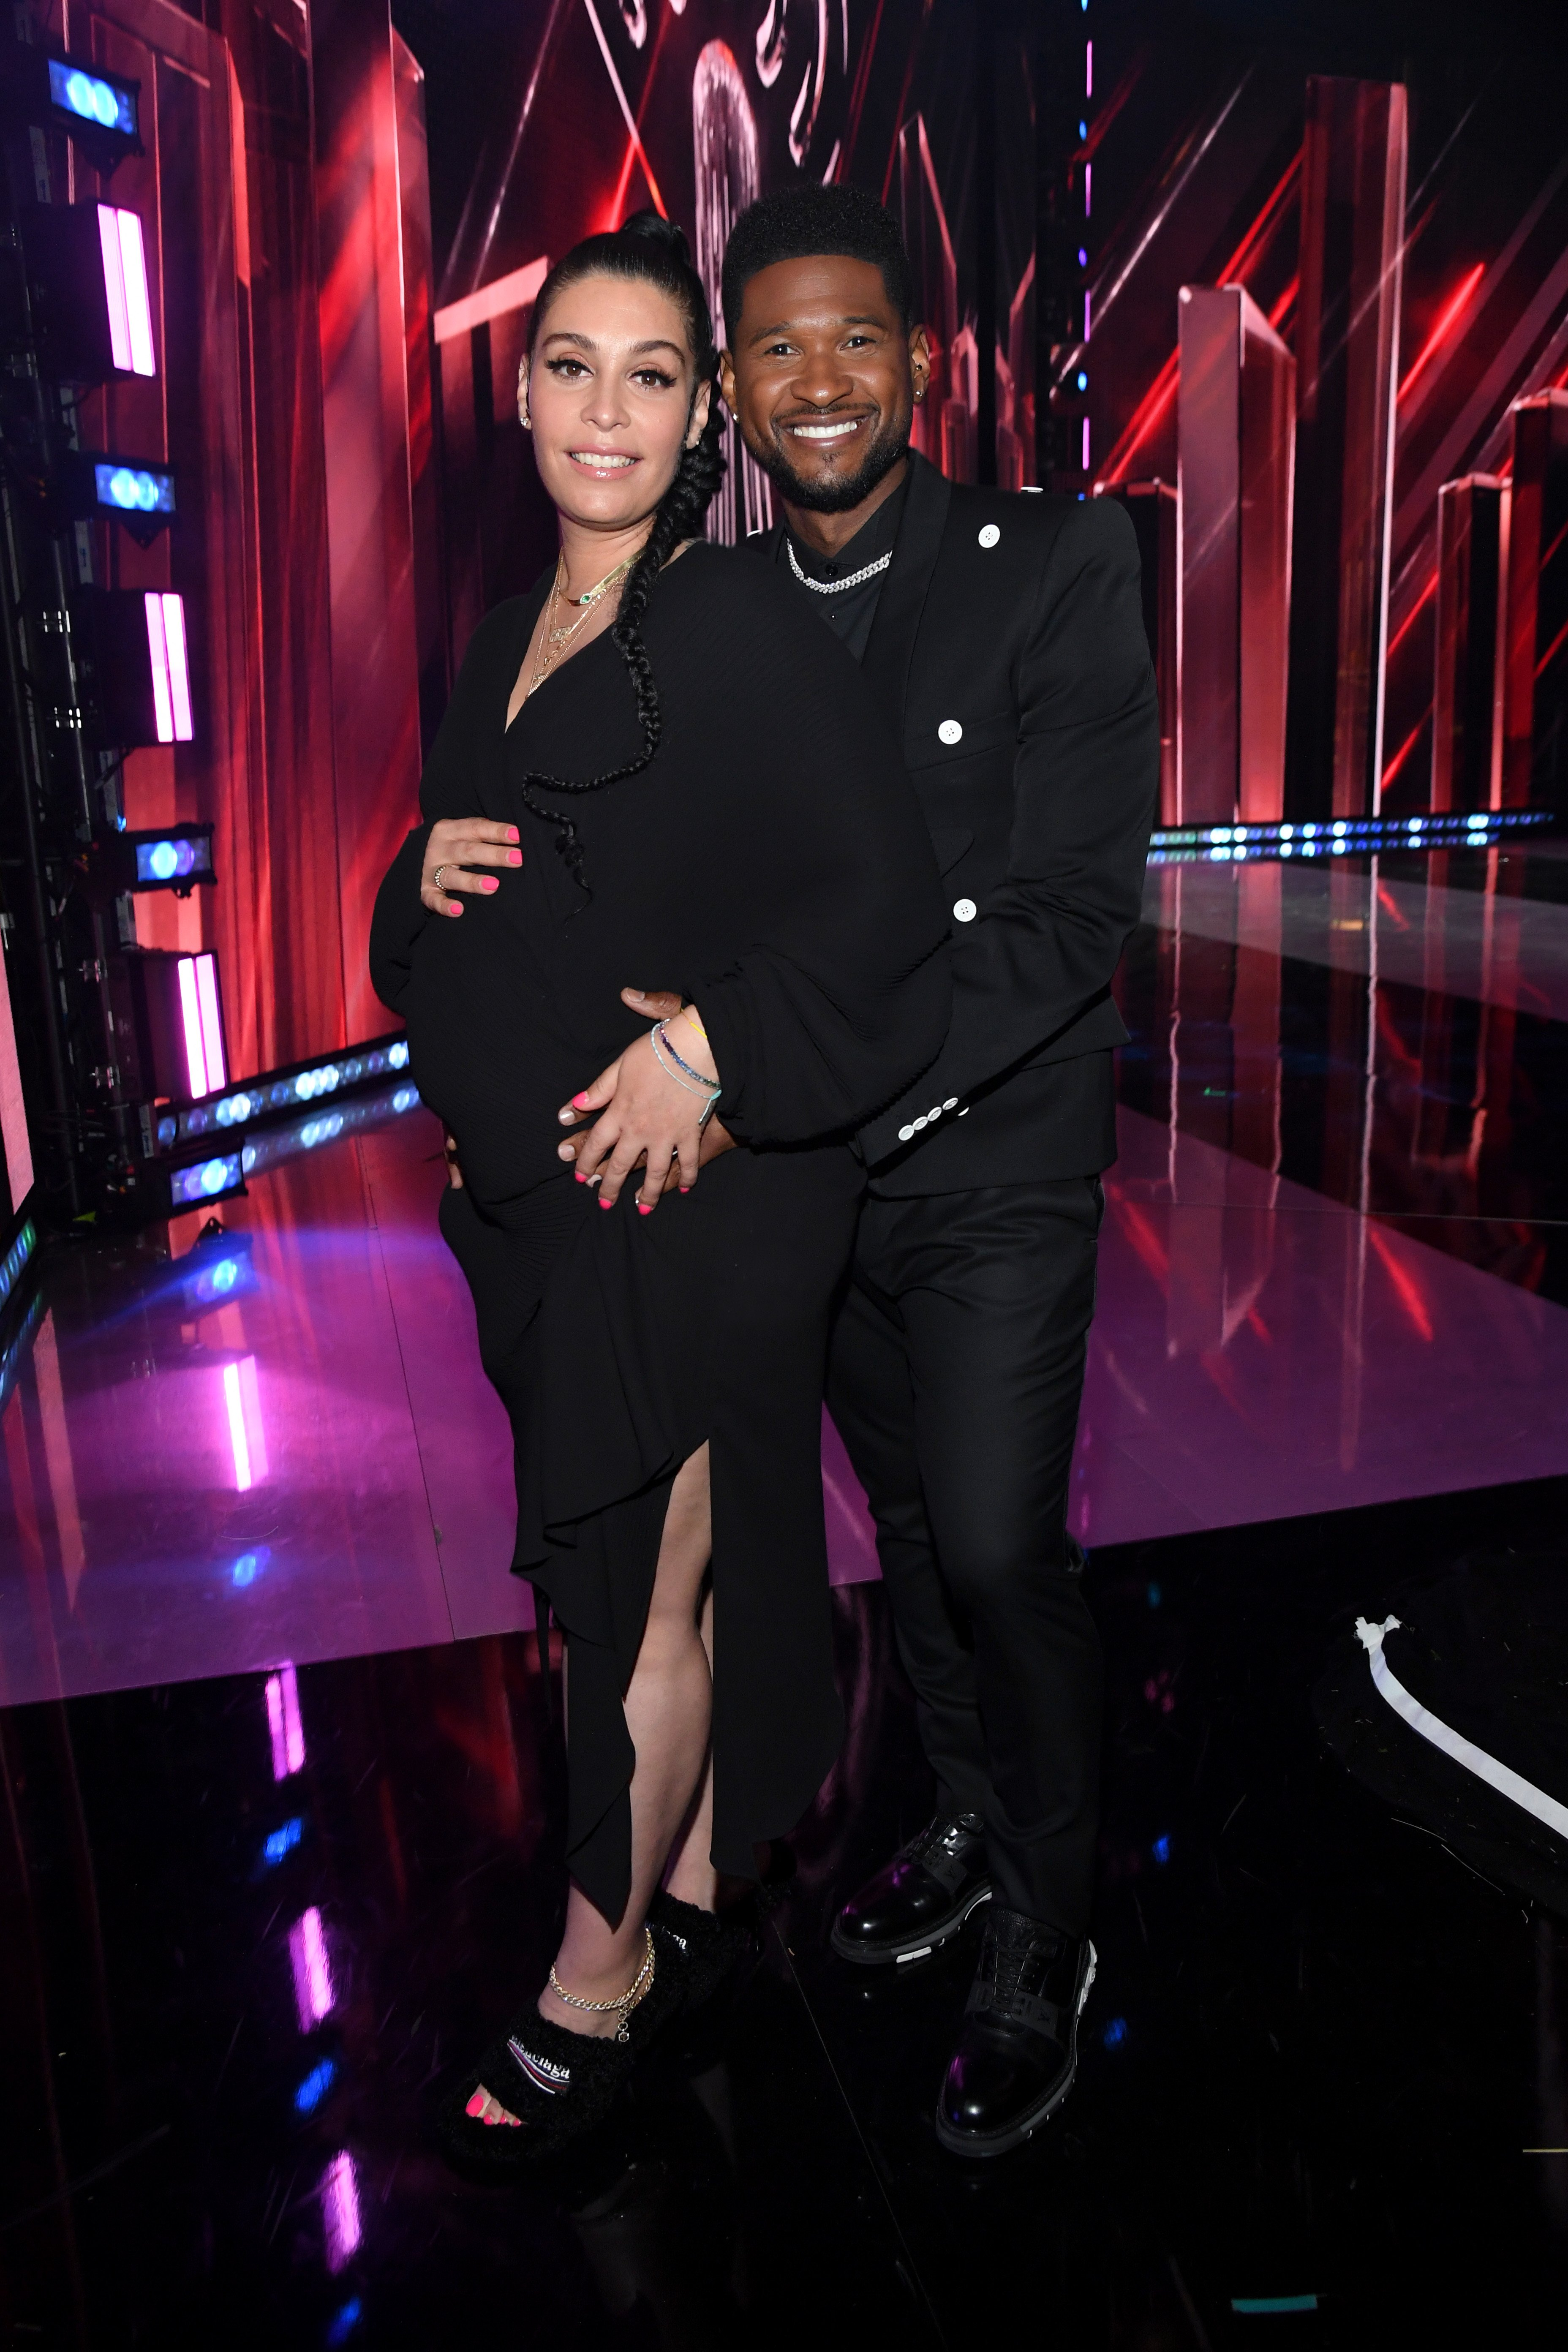 Jennifer Goicoechea and Usher attend the 2021 iHeartRadio Music Awards at The Dolby Theatre in Los Angeles, California on May 27, 2021. | Photo: Getty Images